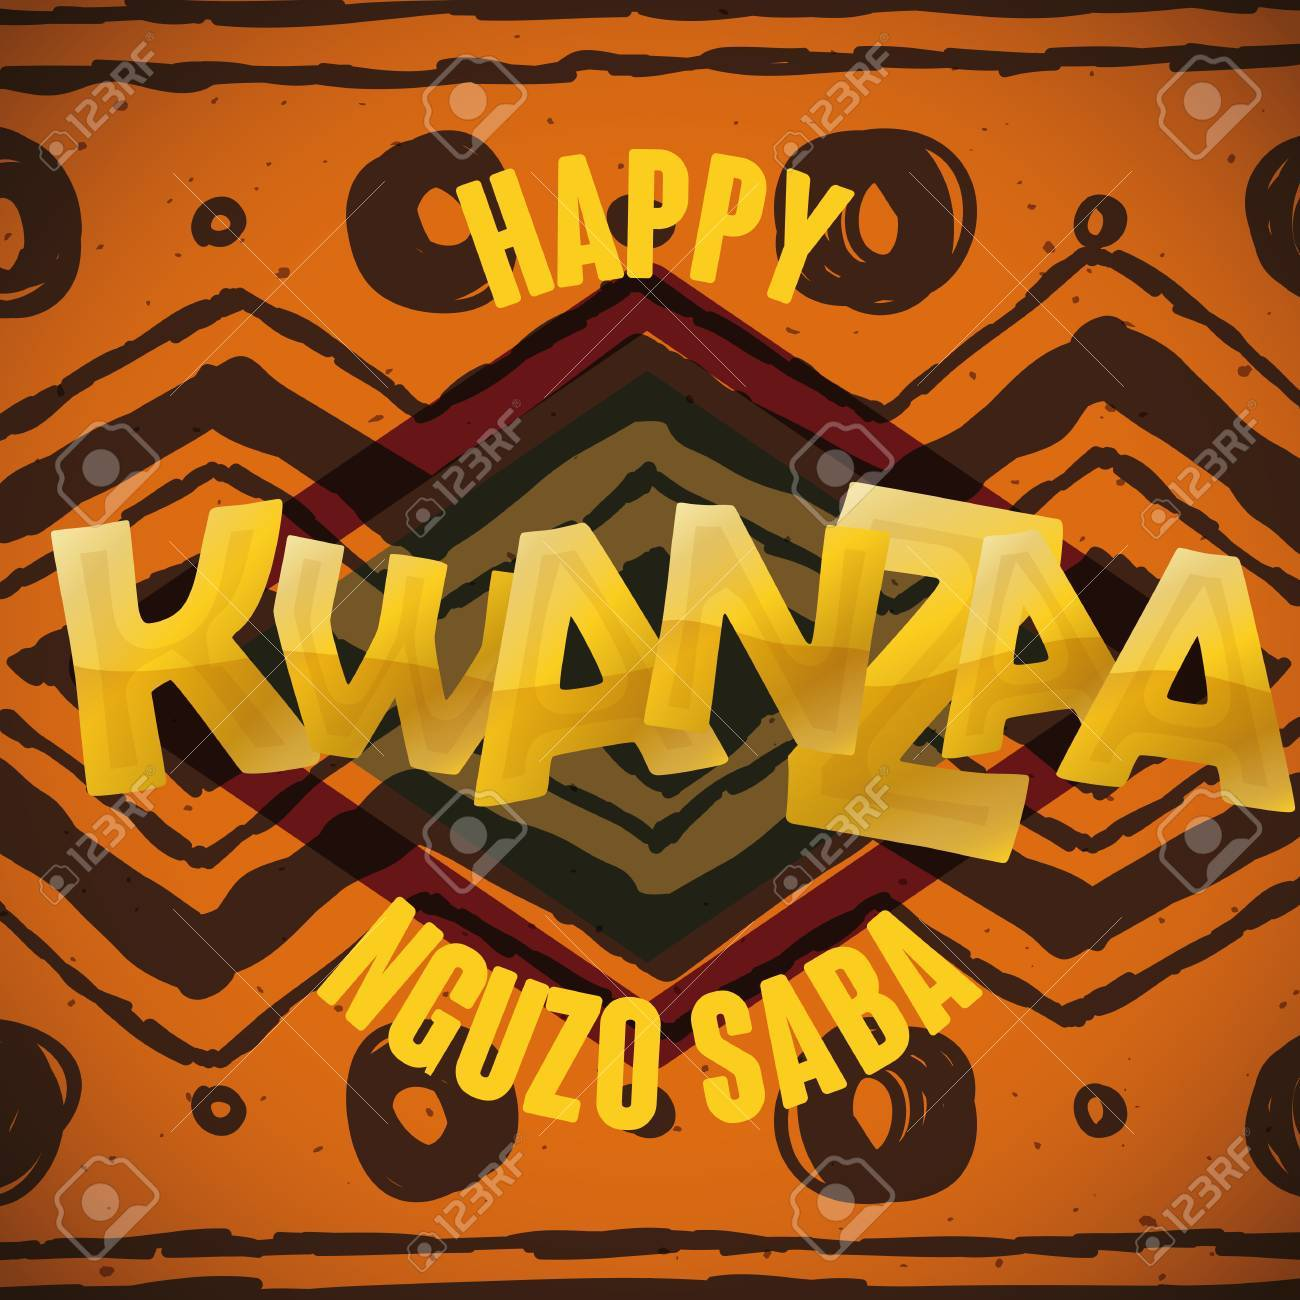 Kwanzaa greeting message with golden background royalty free kwanzaa greeting message with golden background stock vector 50018663 m4hsunfo